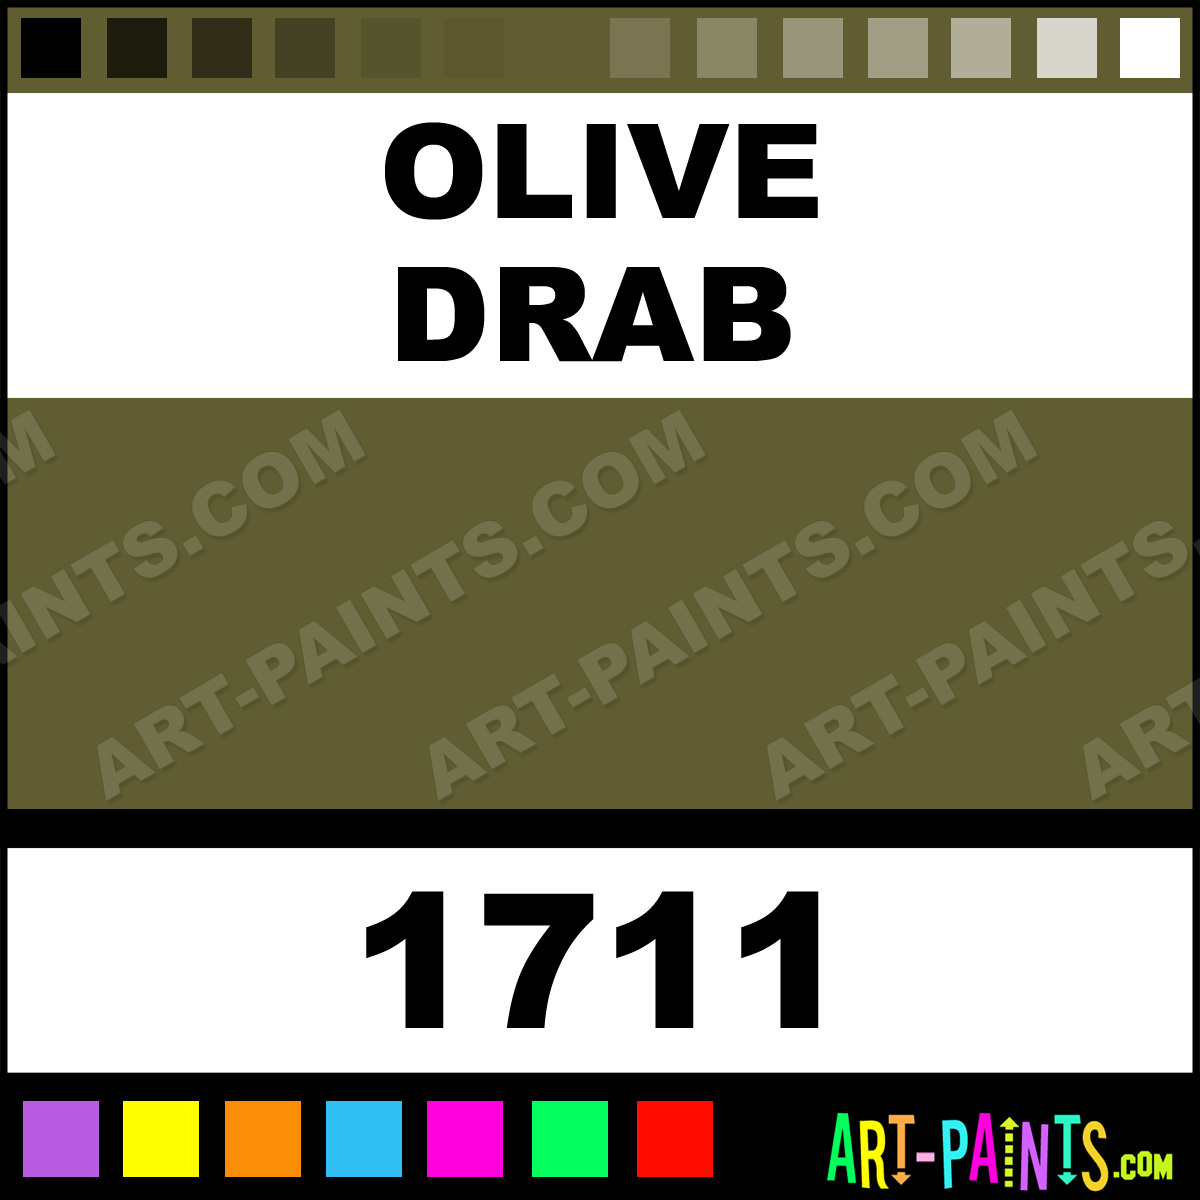 Olive drab model master acrylic paints 1711 olive drab paint olive drab paint 1711 by testors model master paints geenschuldenfo Choice Image